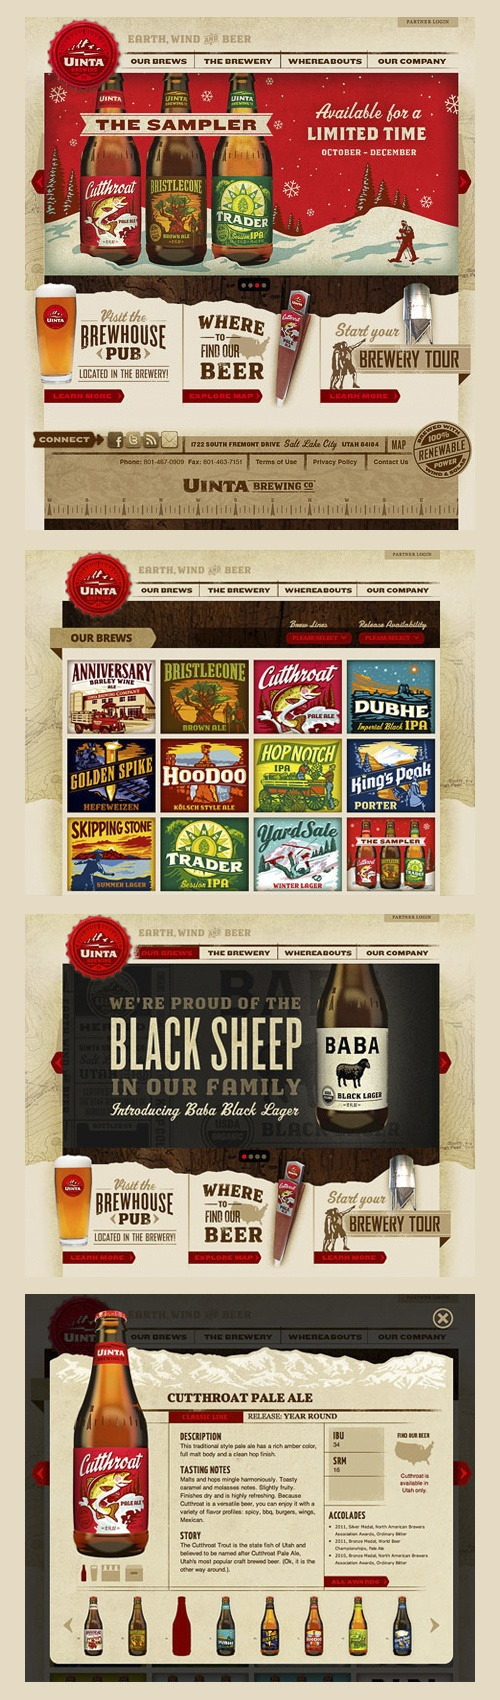 Uinta Brewing Website Designed by The Tenfold Collective *** The Uinta Brewing Co. website has officially launched. For Uinta, it's all about the beer, so we focused our attention on making sure each beer is beautifully displayed with plenty of information for the interested beer geek. This site is chock full of detail and texture to convey the outdoor Utah lifestyle, as well as the richness and diversity of the Uinta brews.